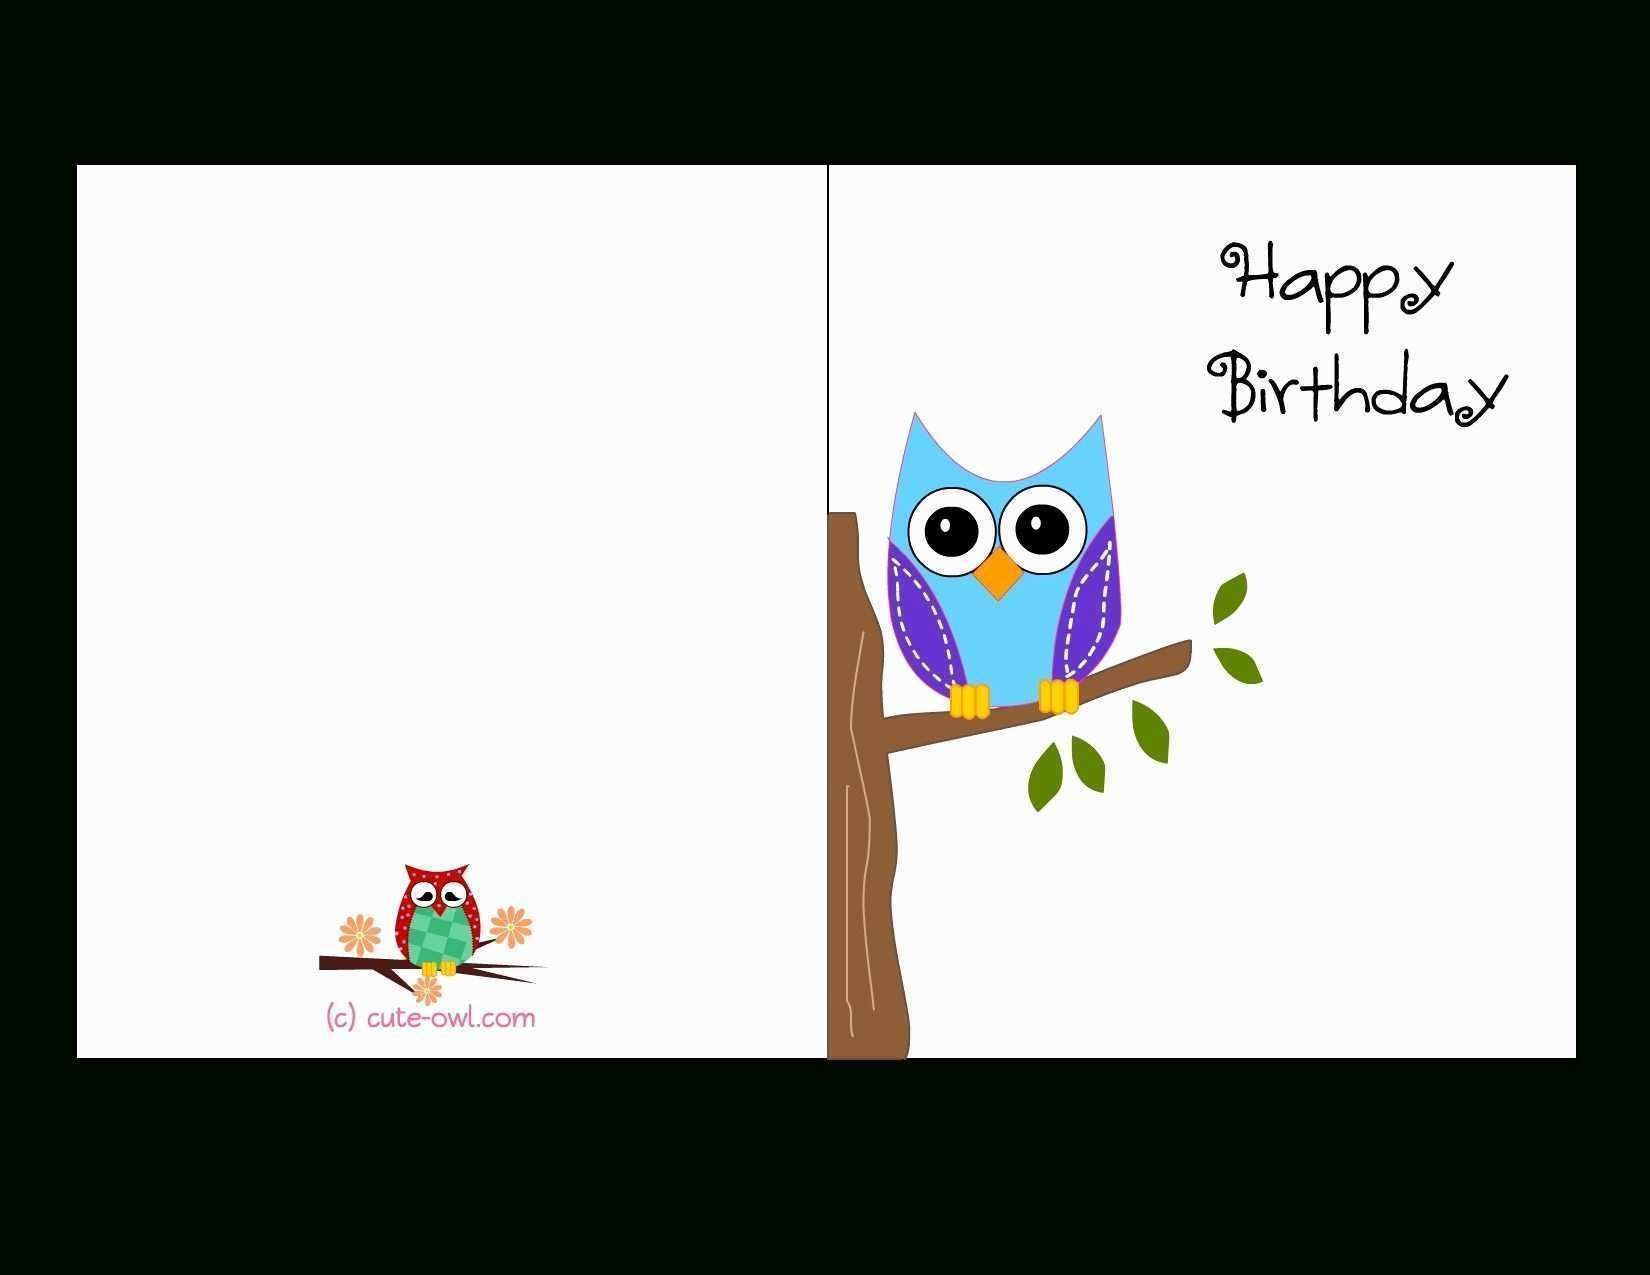 001 Awful Birthday Card Template Word Picture  Blank Greeting Microsoft 2010Full